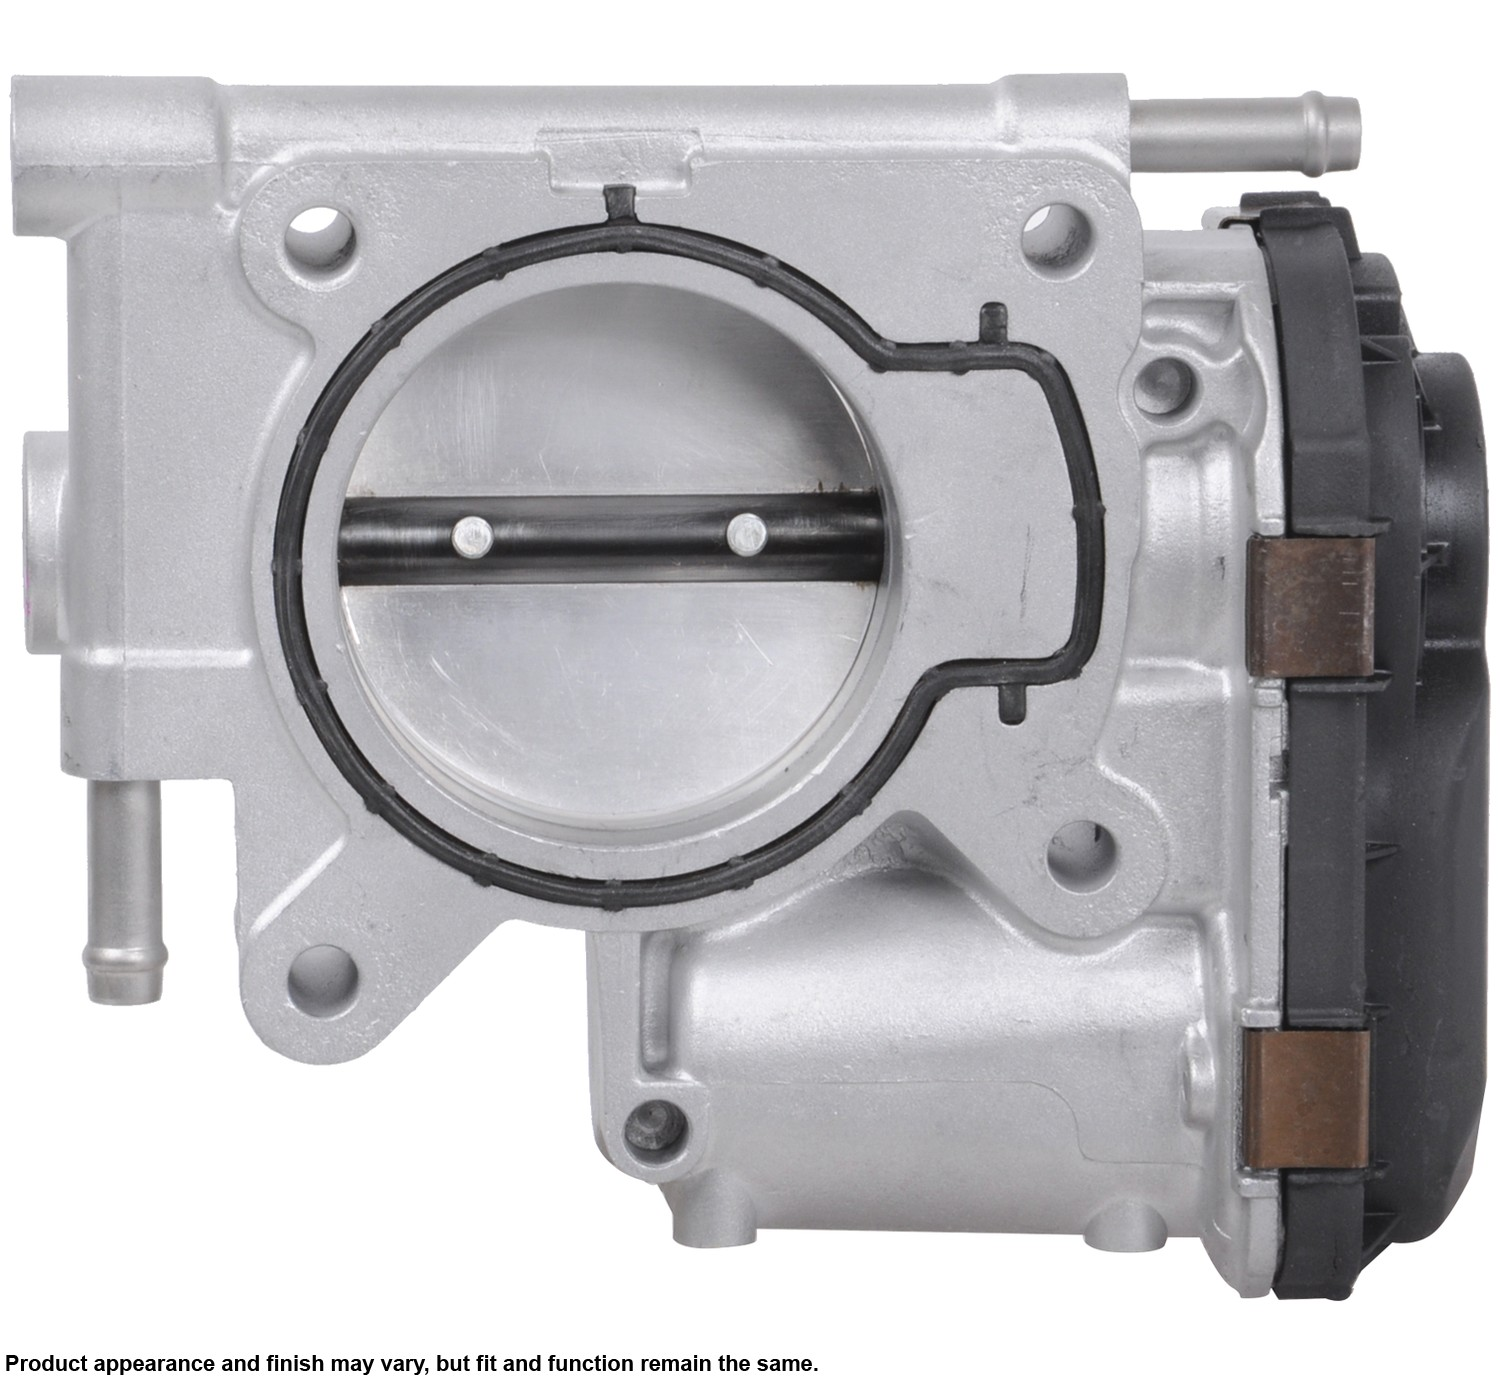 2004 Mazda 6 Fuel Injection Throttle Body Cardone 67-4204